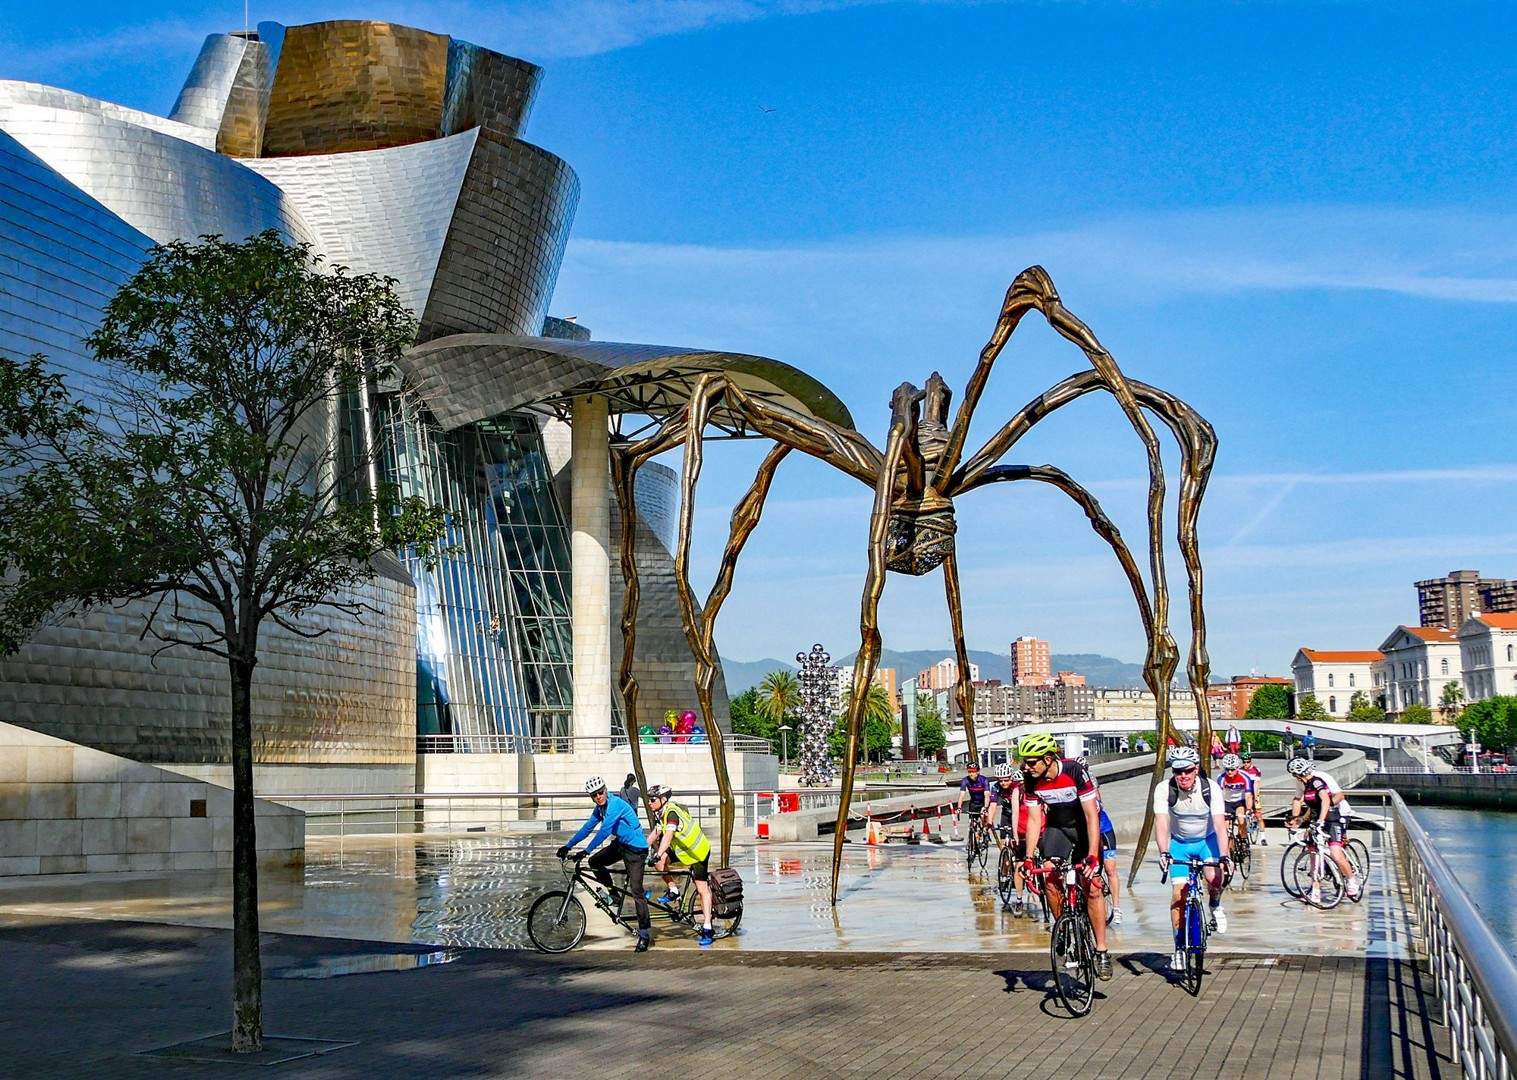 riding-in-bilbao-northern-spain-journey-to-barcelona-guided-cycling-holiday.jpg - Northern Spain - Bilbao to Barcelona - Guided Road Cycling Holiday - Road Cycling